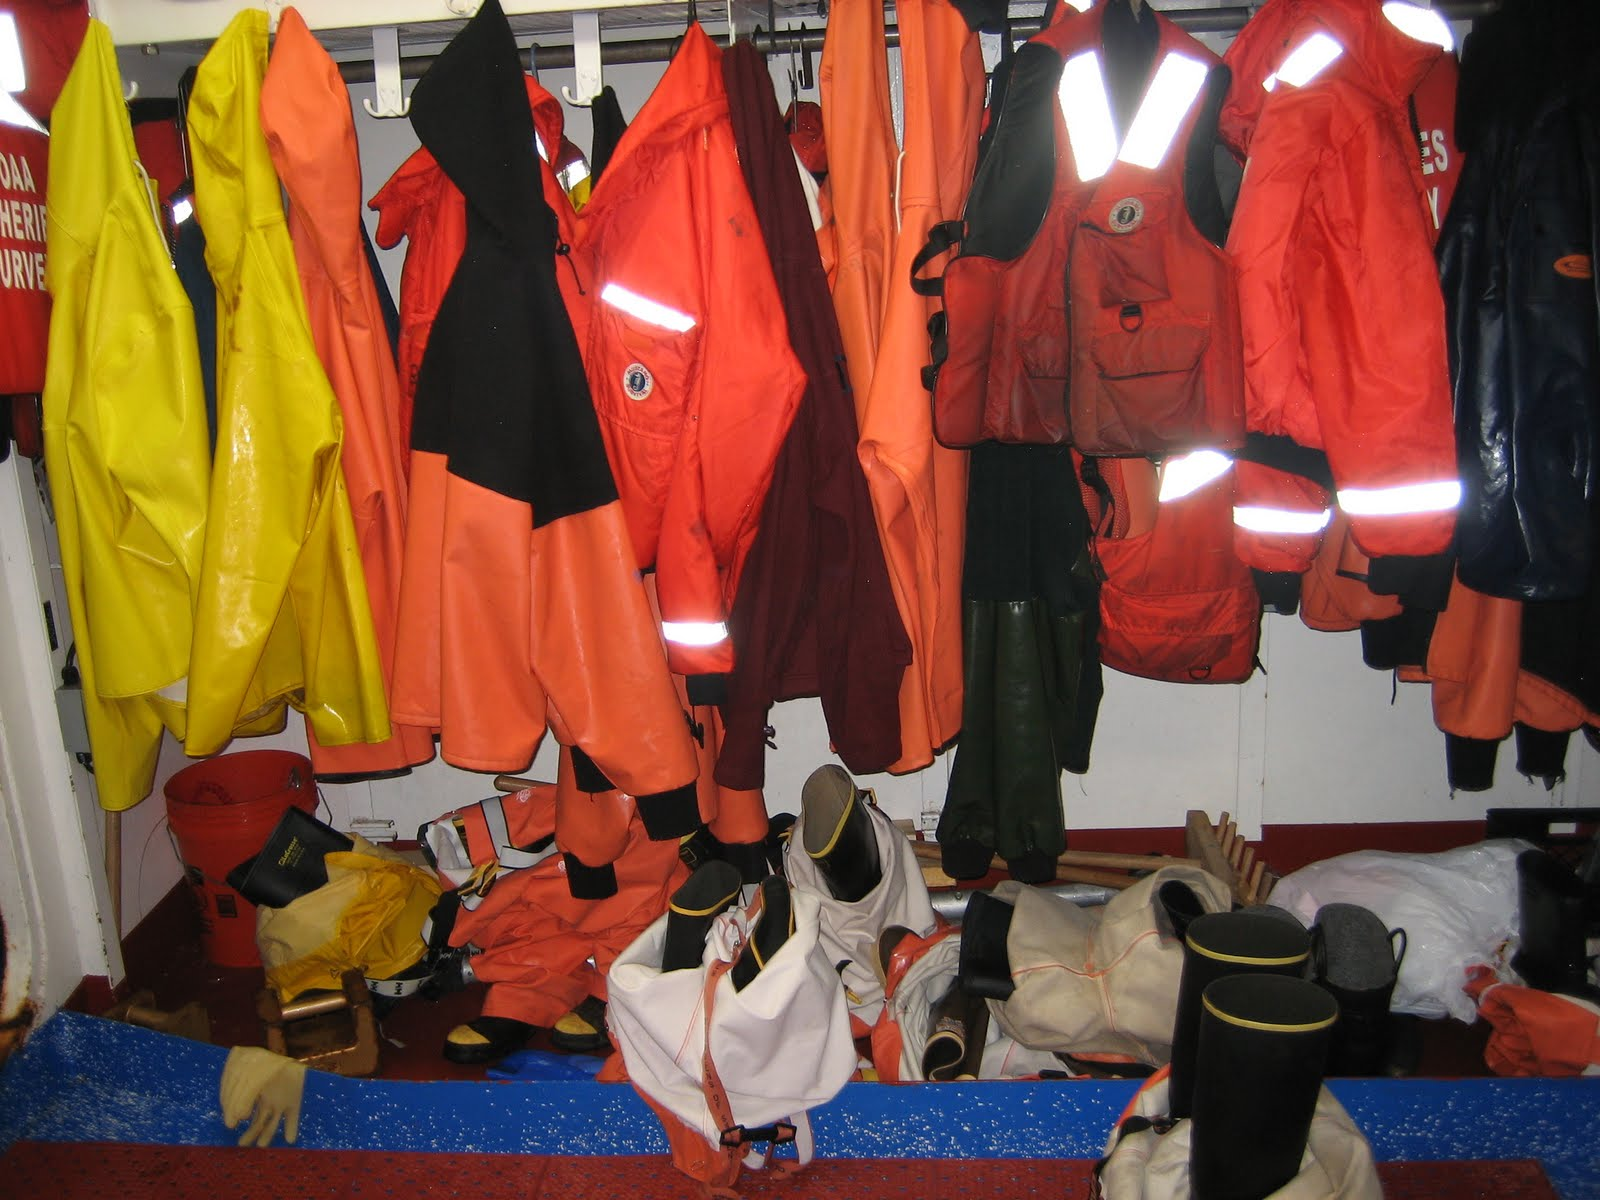 Henry r bigelow noaa teacher at sea blog for Foul weather fishing gear